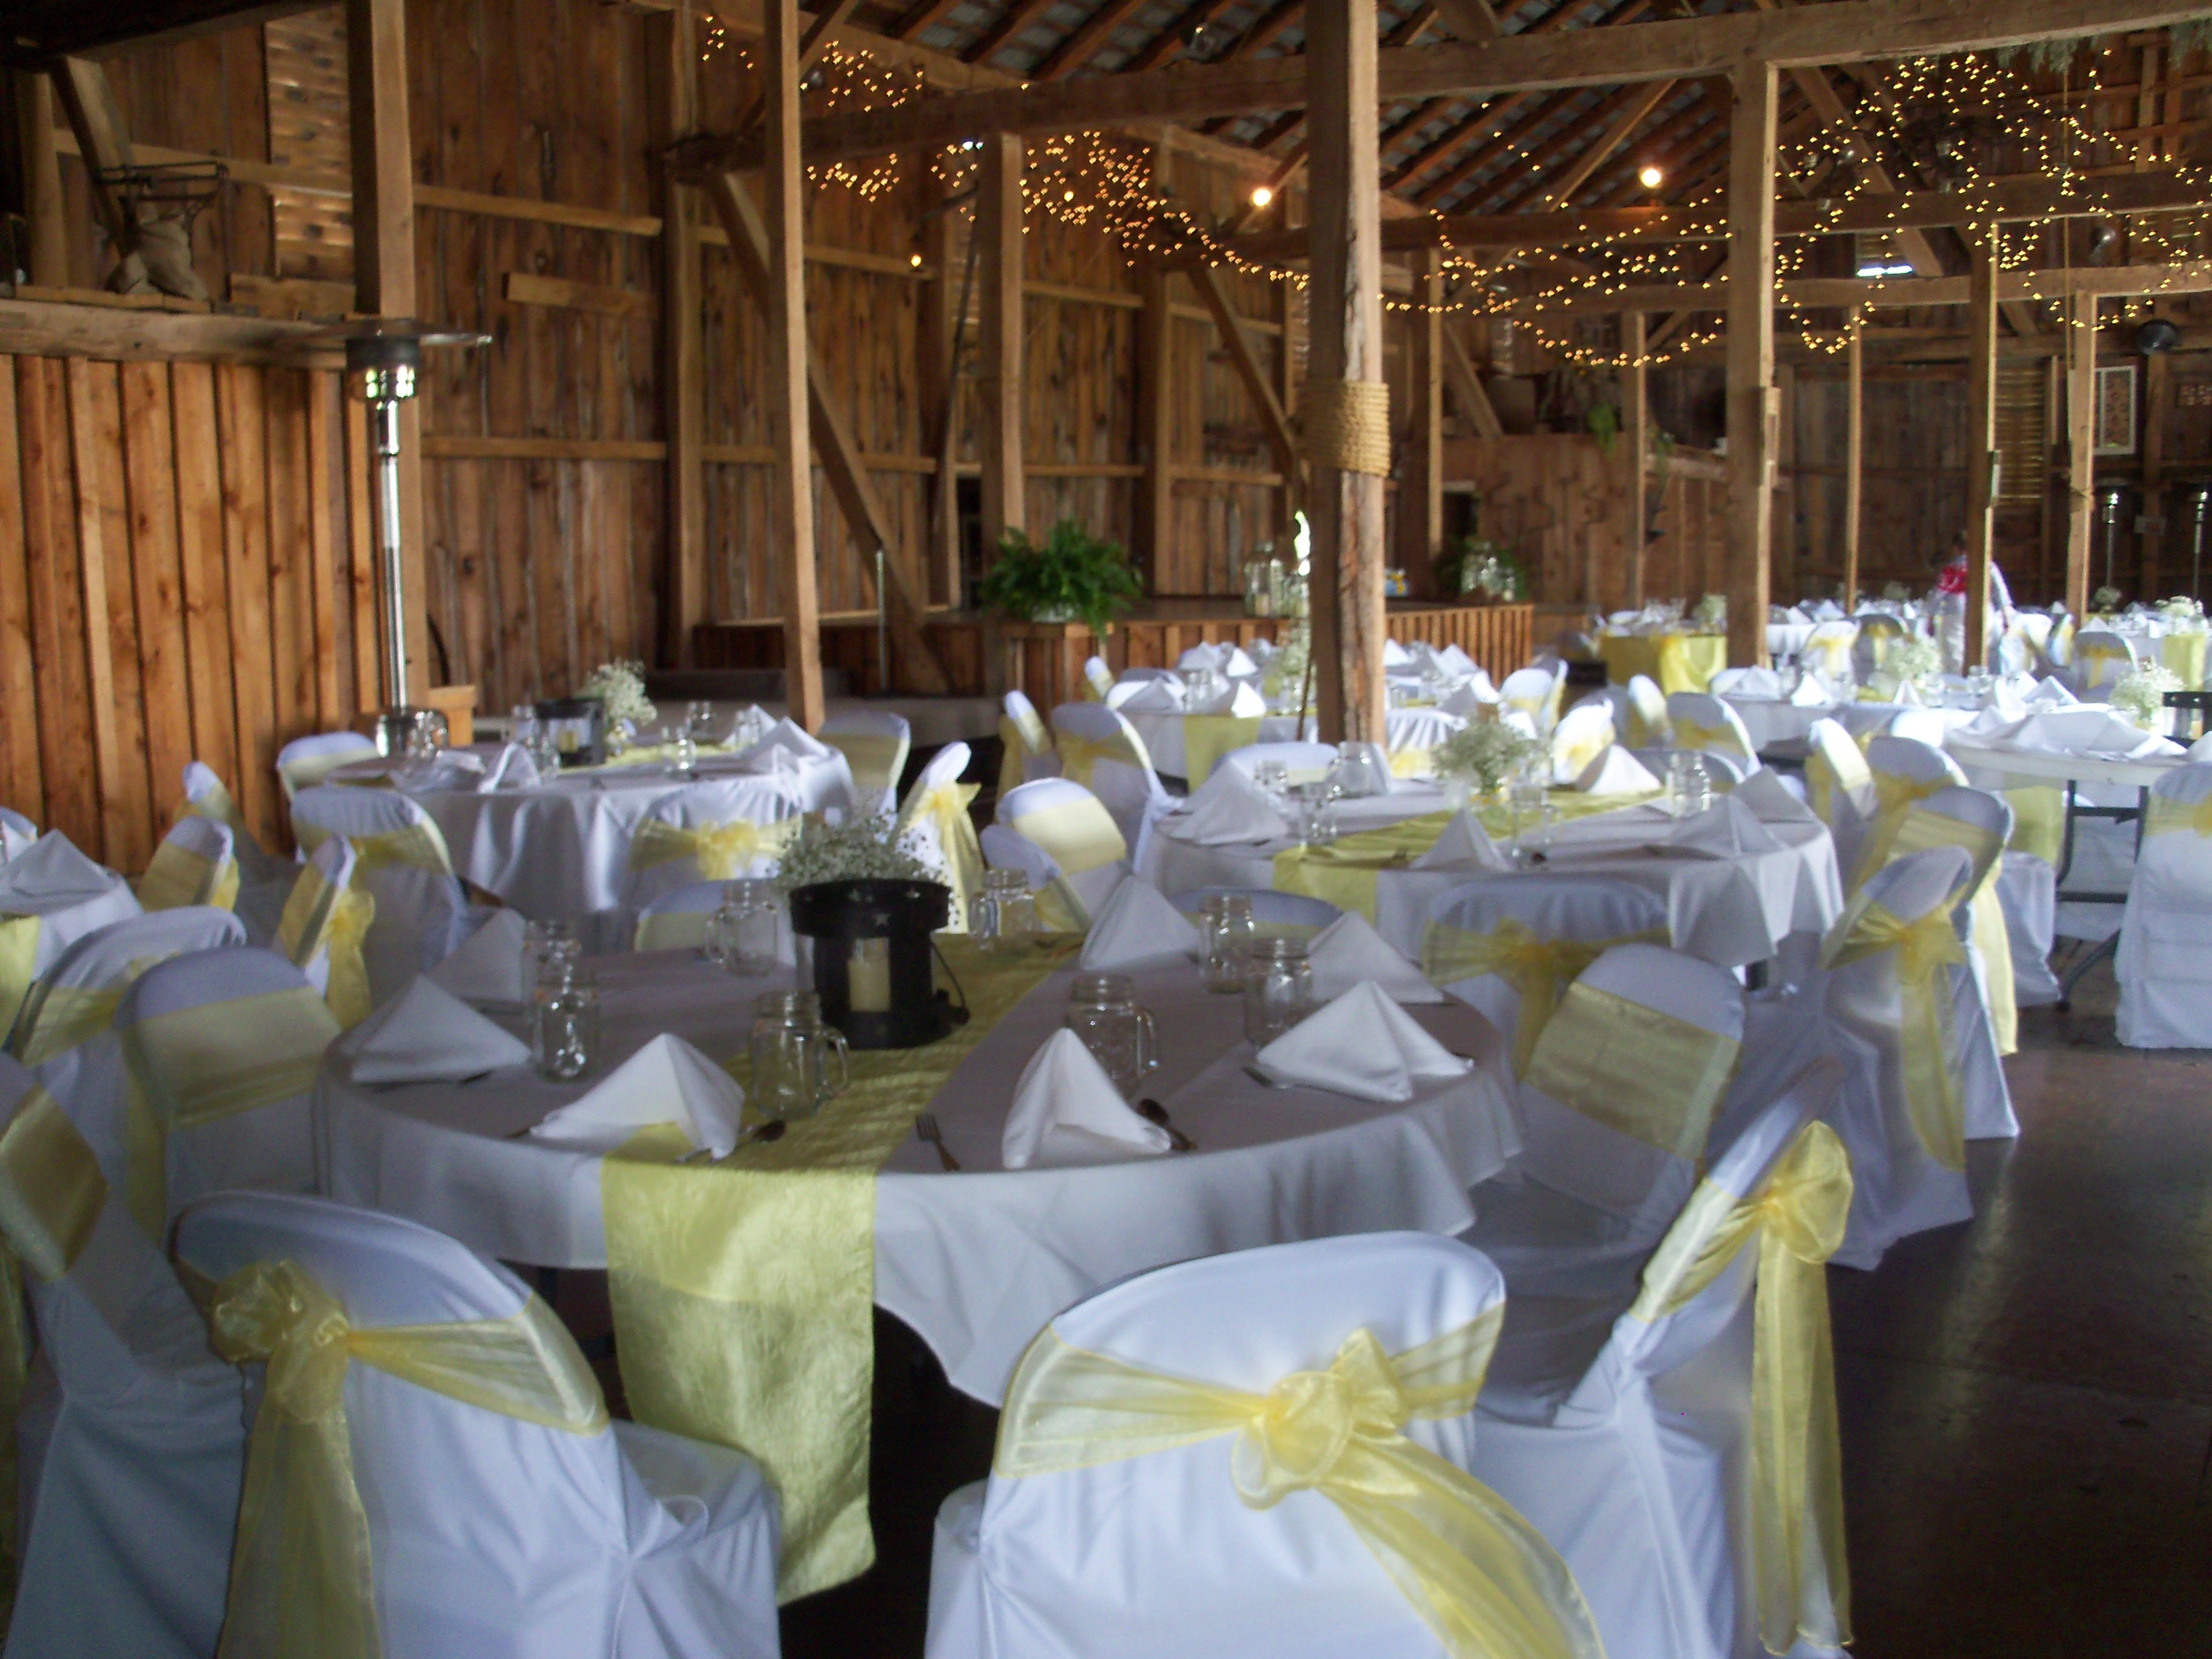 Places To Rent Chair Covers Near Me Jfk Desk Pittsburgh At The Hayloft Pa Barn Wedding